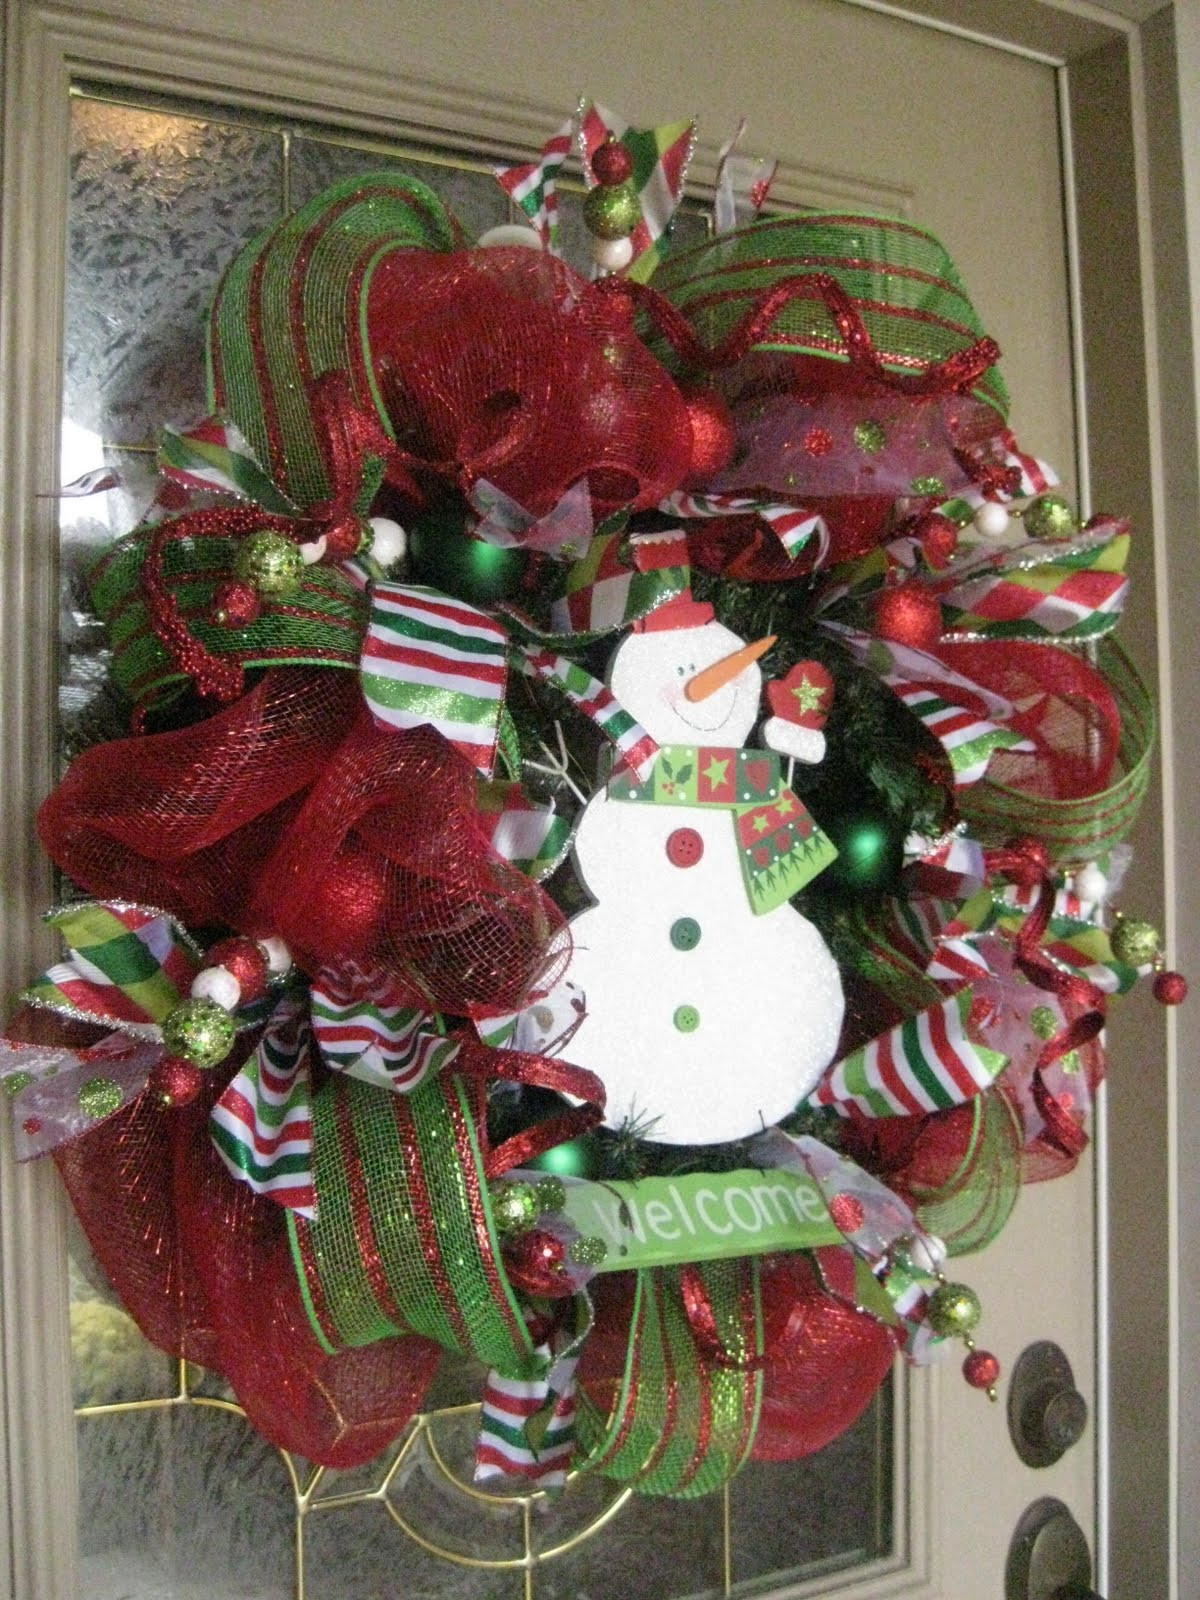 Best ideas about Mesh Wreaths DIY . Save or Pin Always Something 10 DIY Christmas Decor Ideas Now.